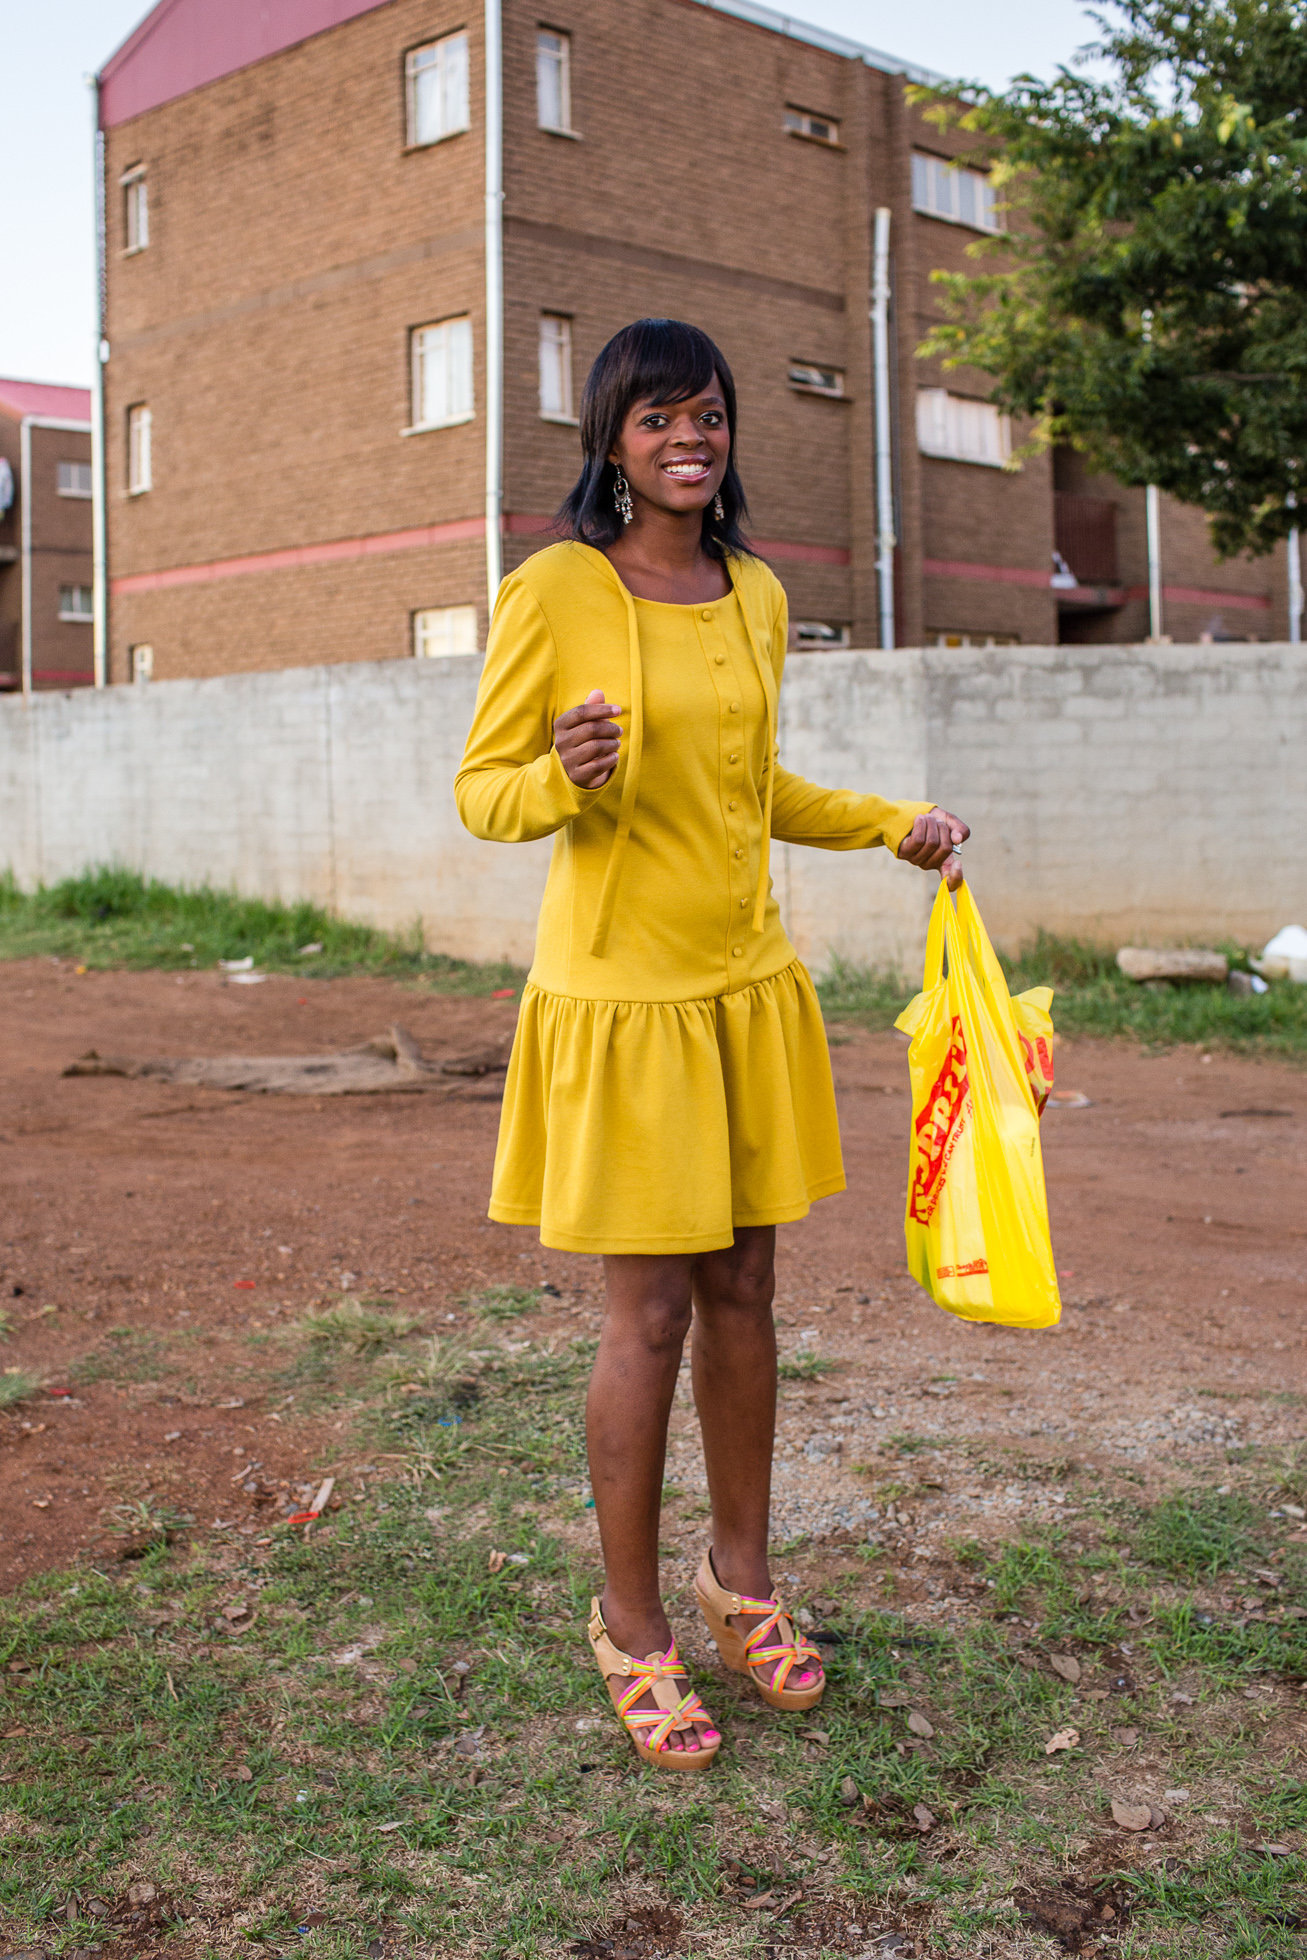 Soweto_Yellow_Dressed_Girl-1230.jpg